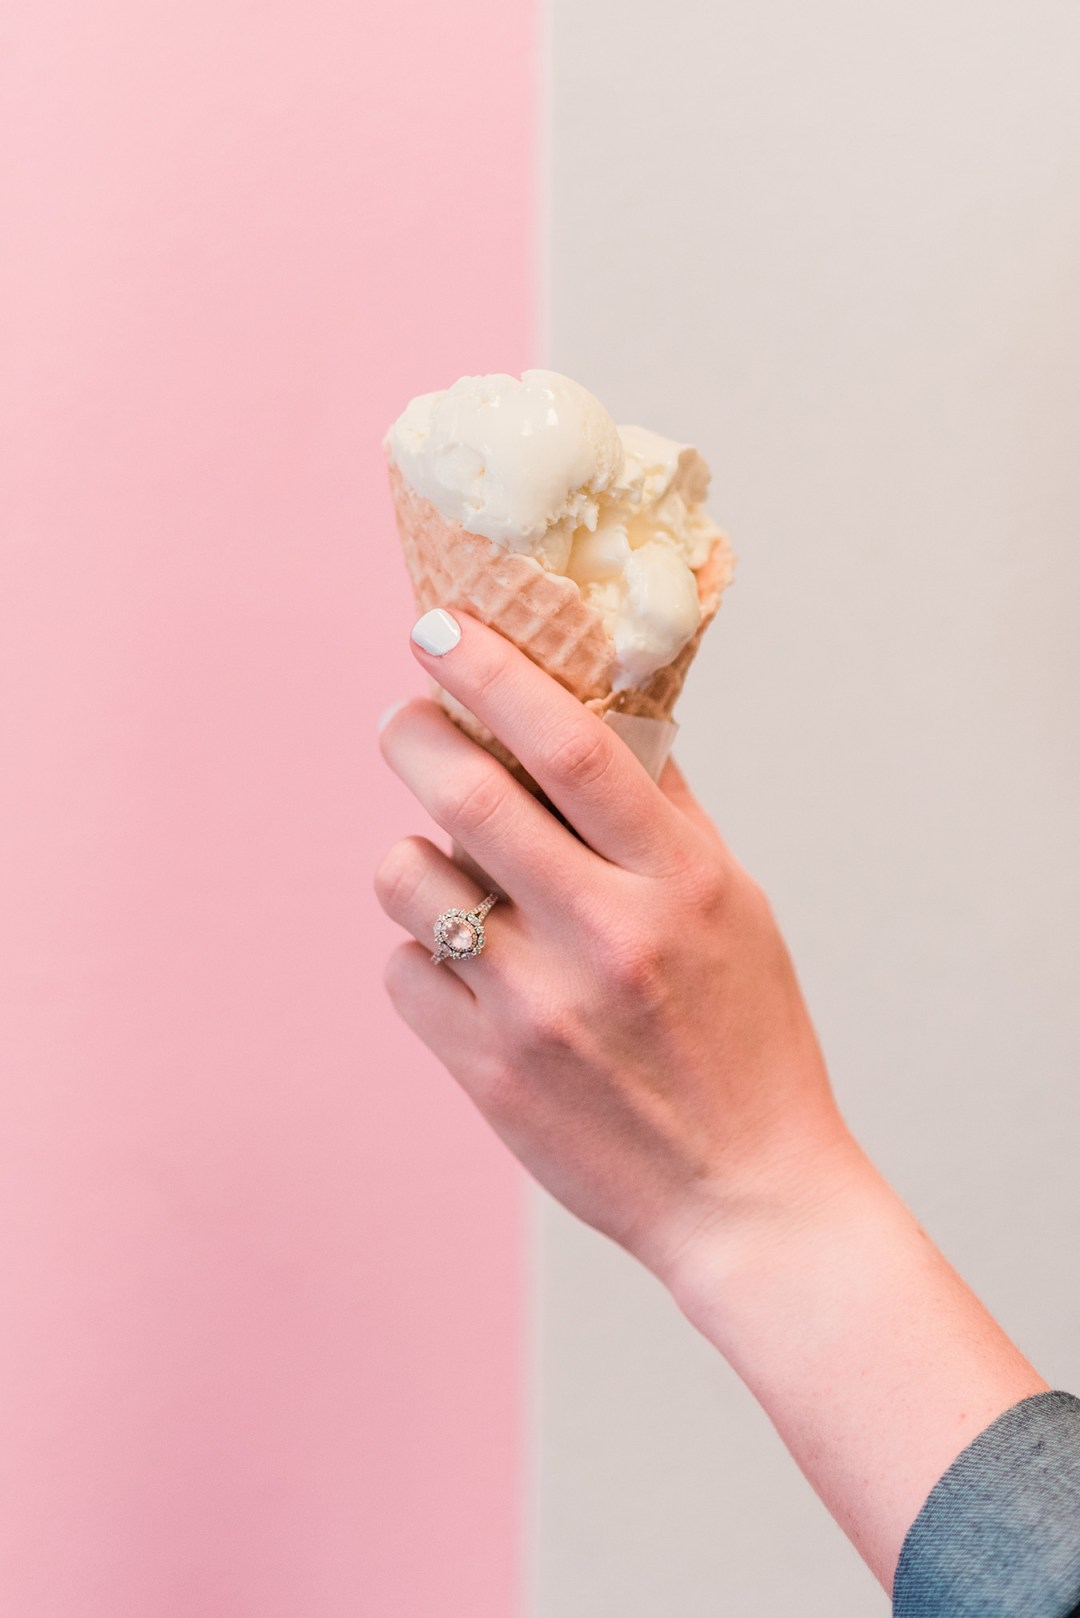 Ice cream cone and engagement ring